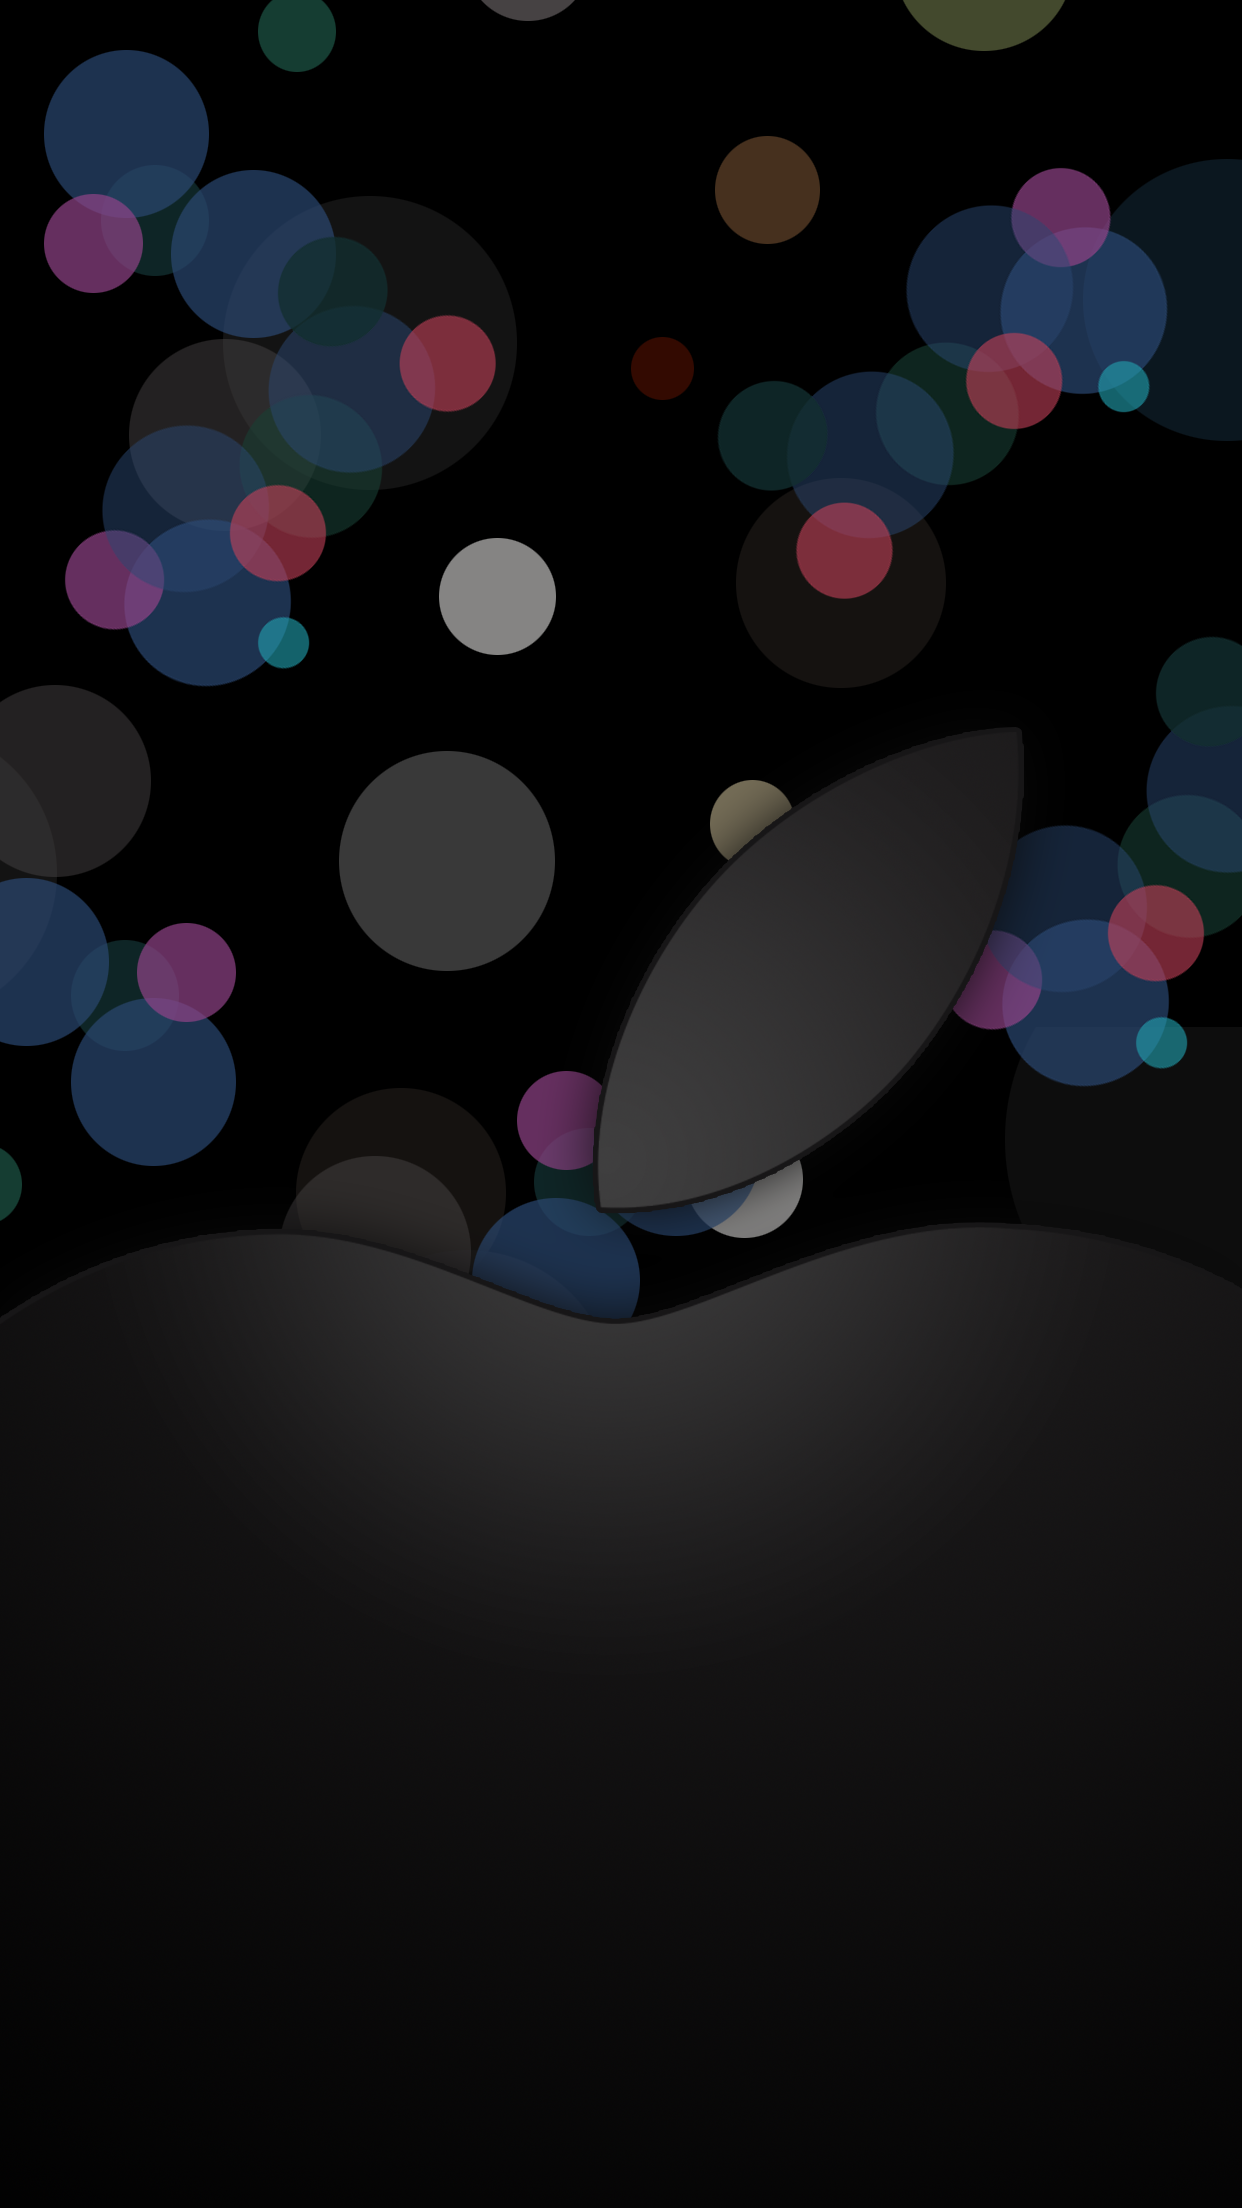 Apple September 7 event wallpaper ar7 custom1